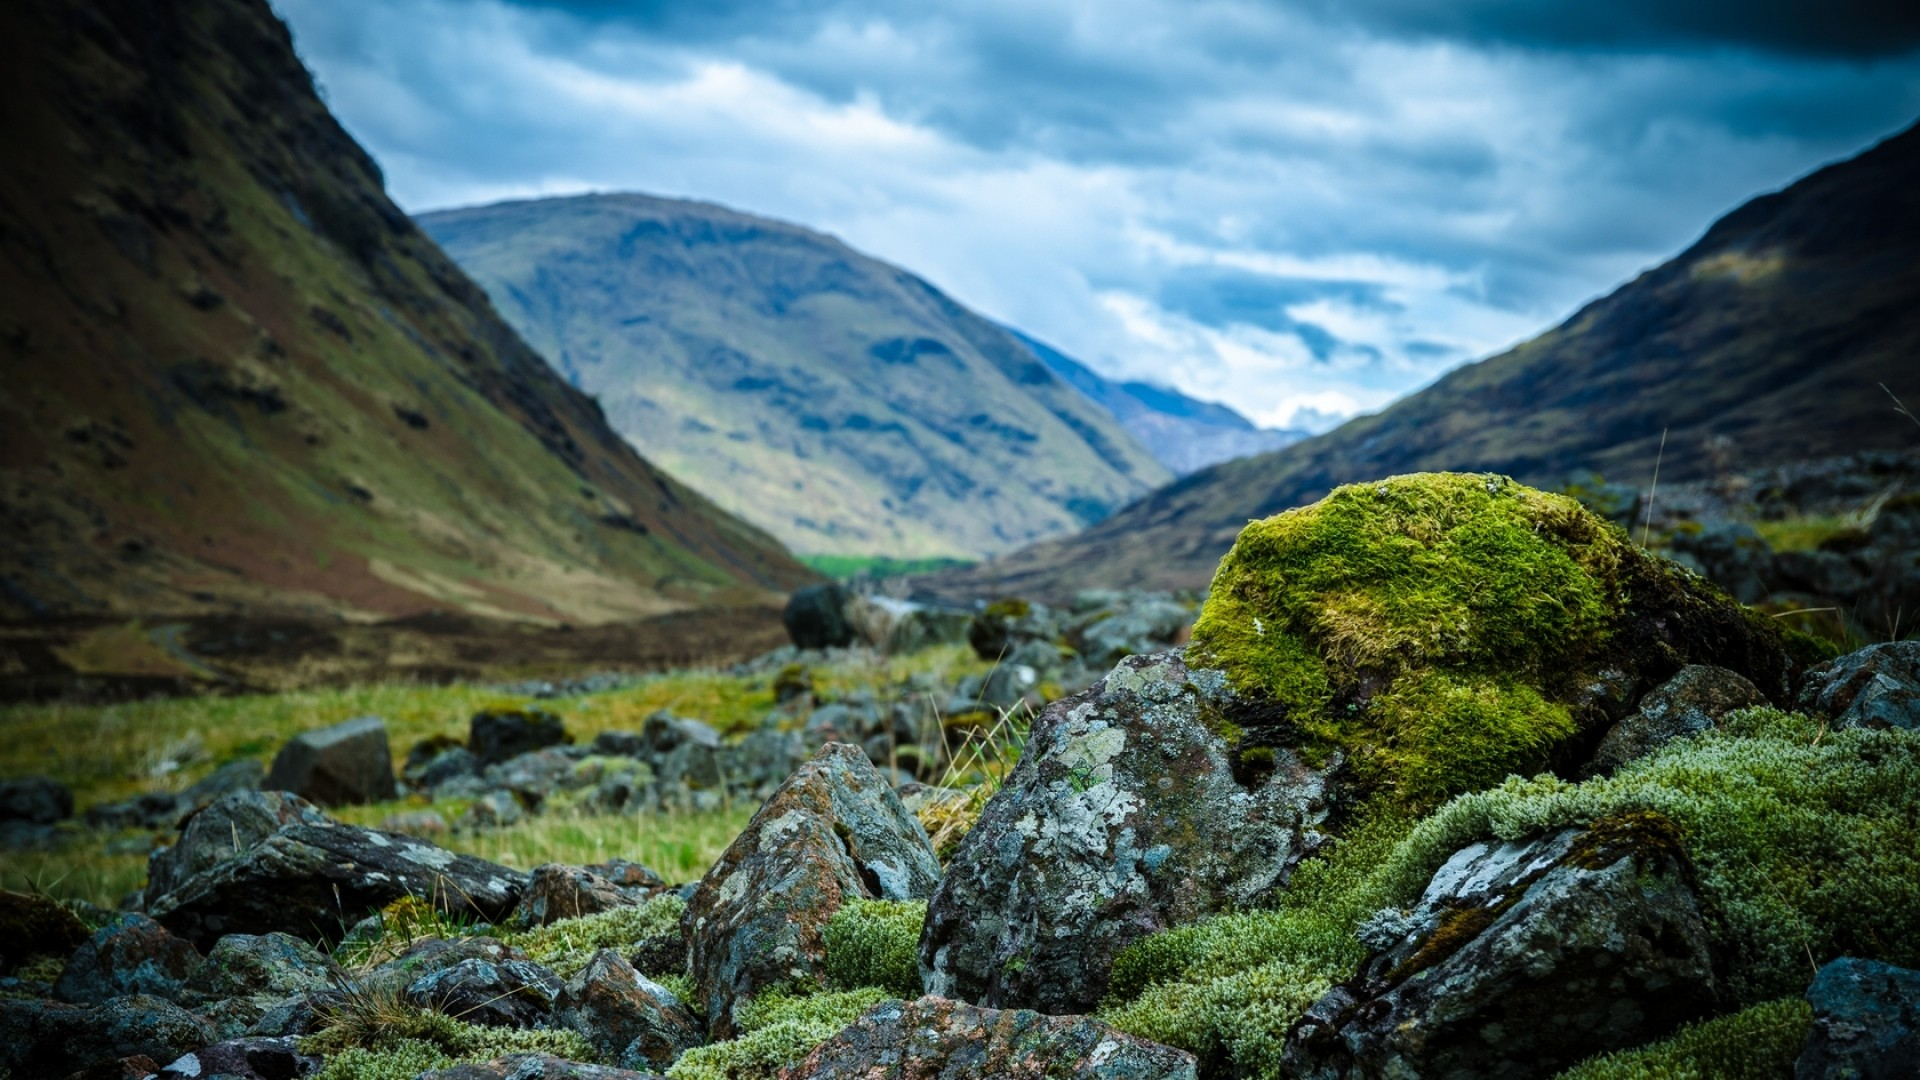 Preview wallpaper scotland, mountains, stones, moss, clouds, cloudy  1920×1080